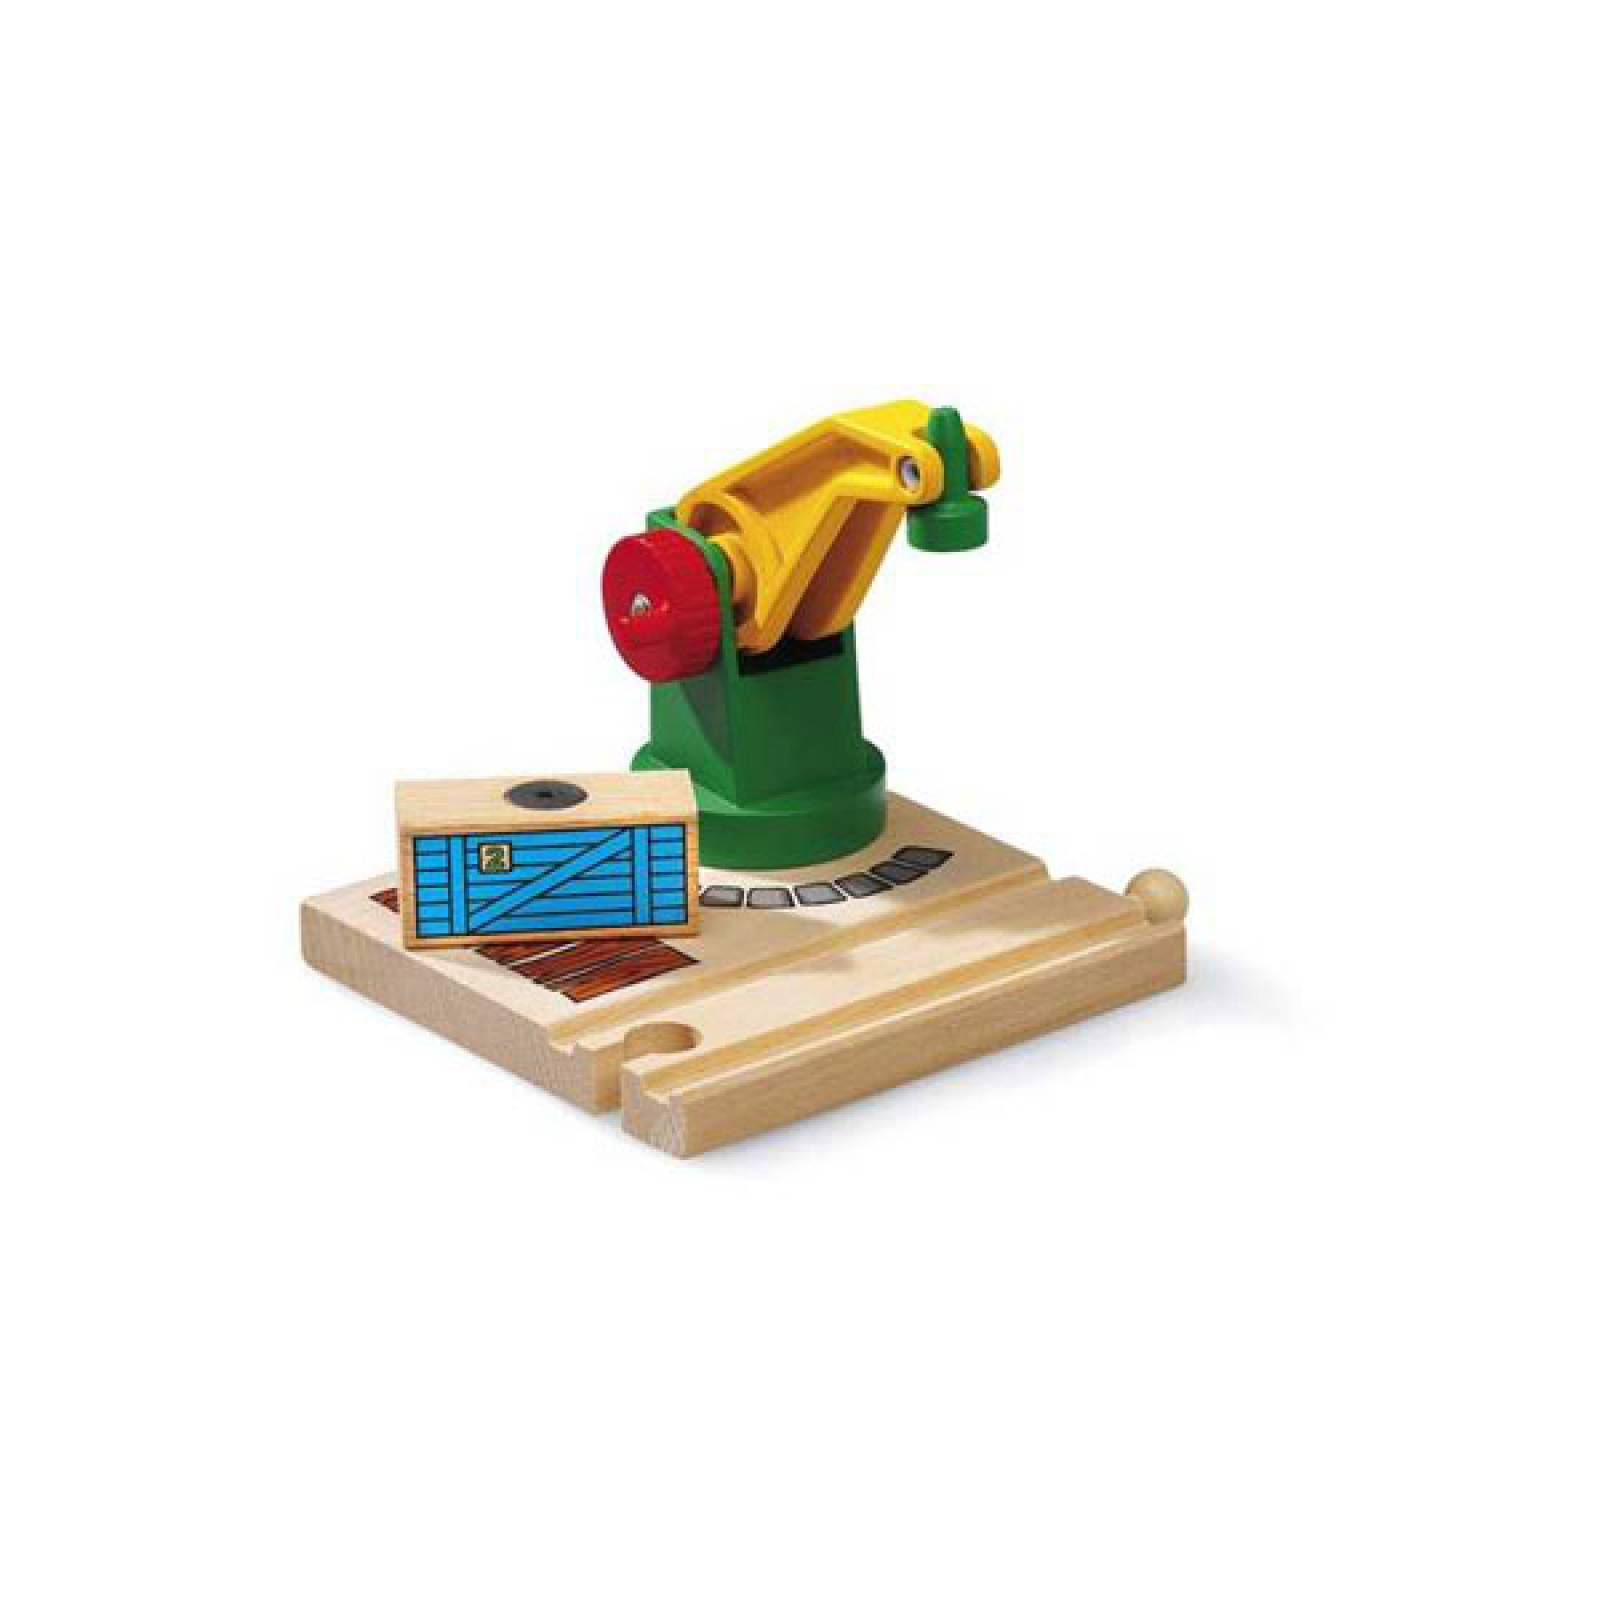 Low Level Crane  BRIO Wooden Railway Age 3+